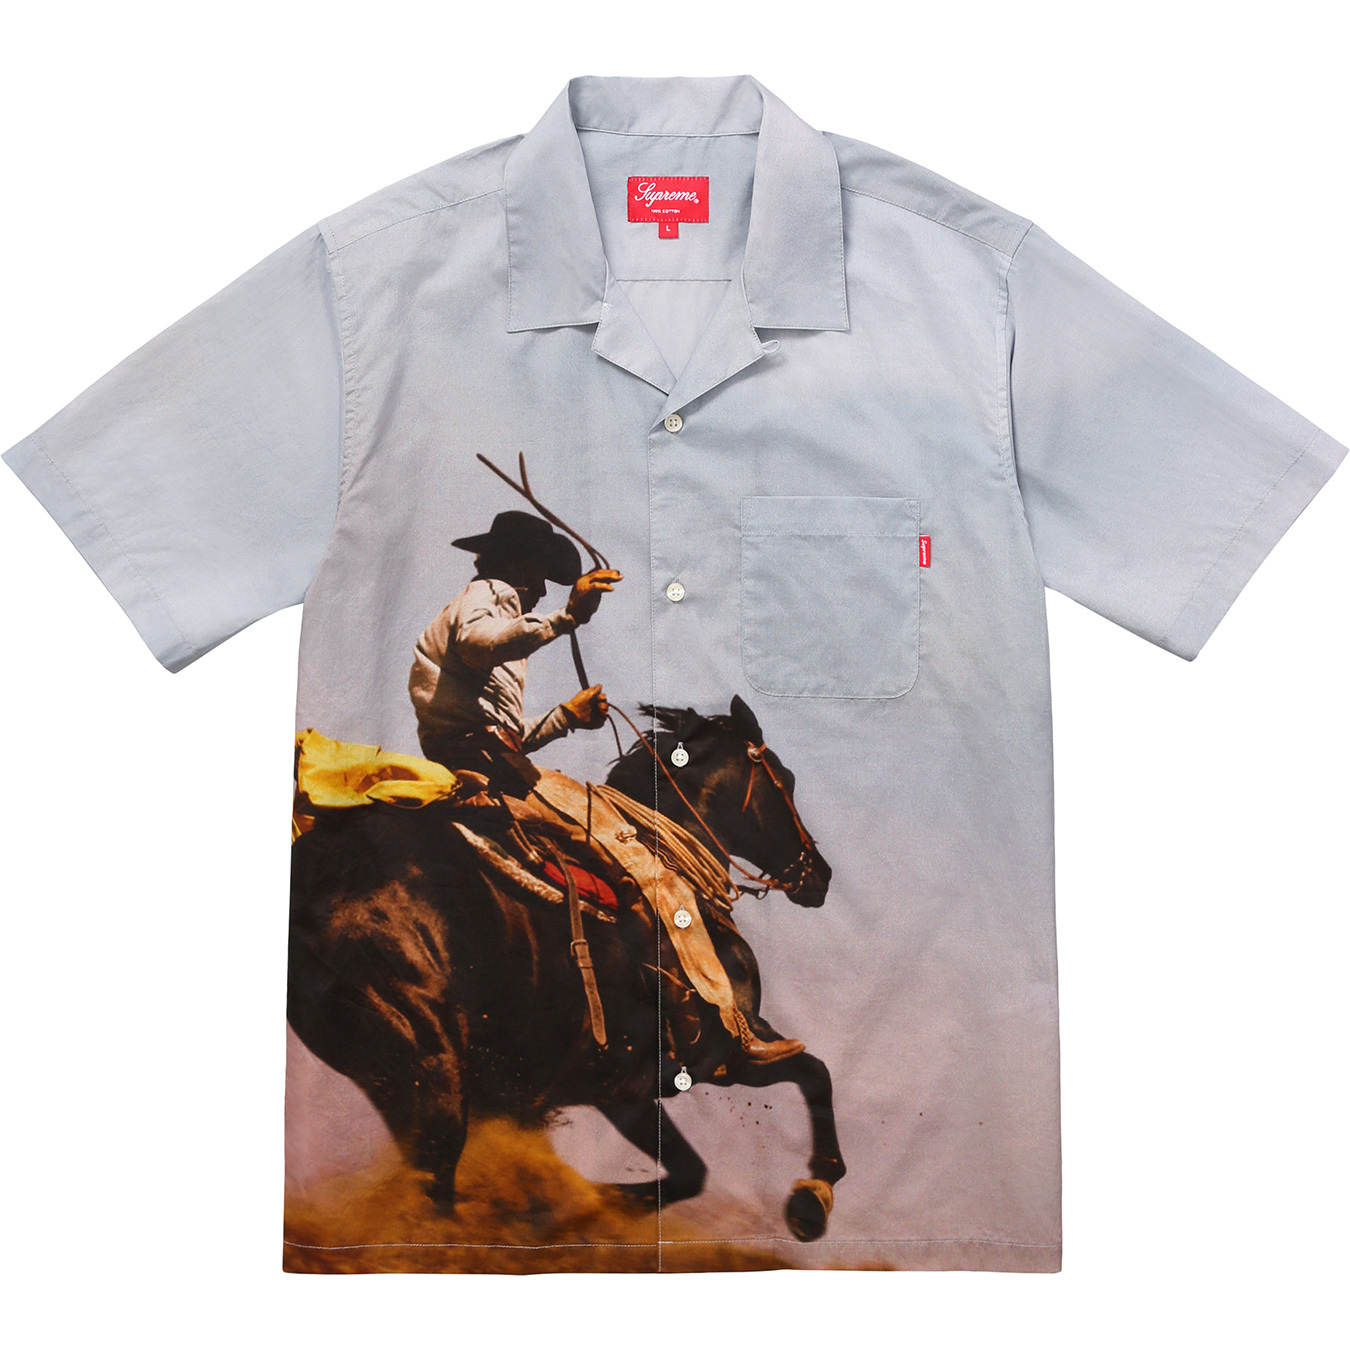 supreme-online-store-20170603-week15-release-items-cowboy